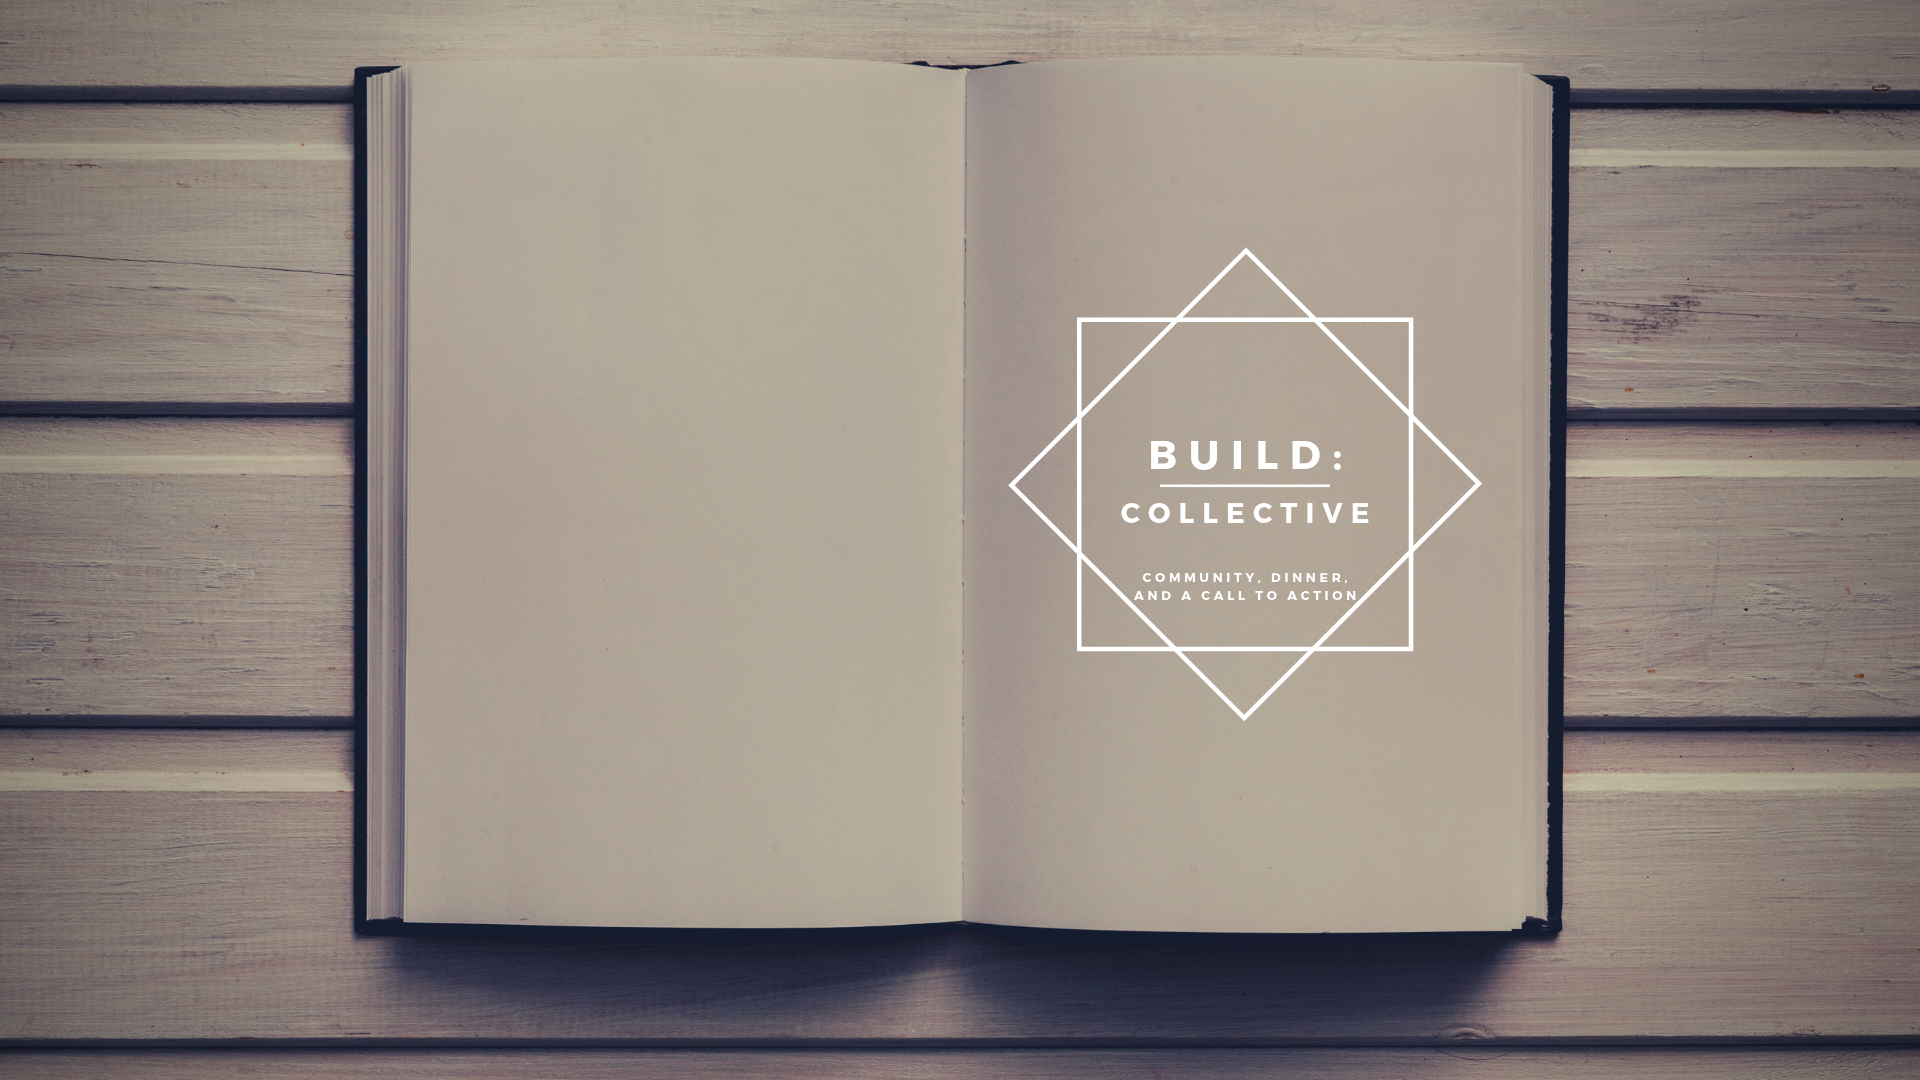 Build Collective image